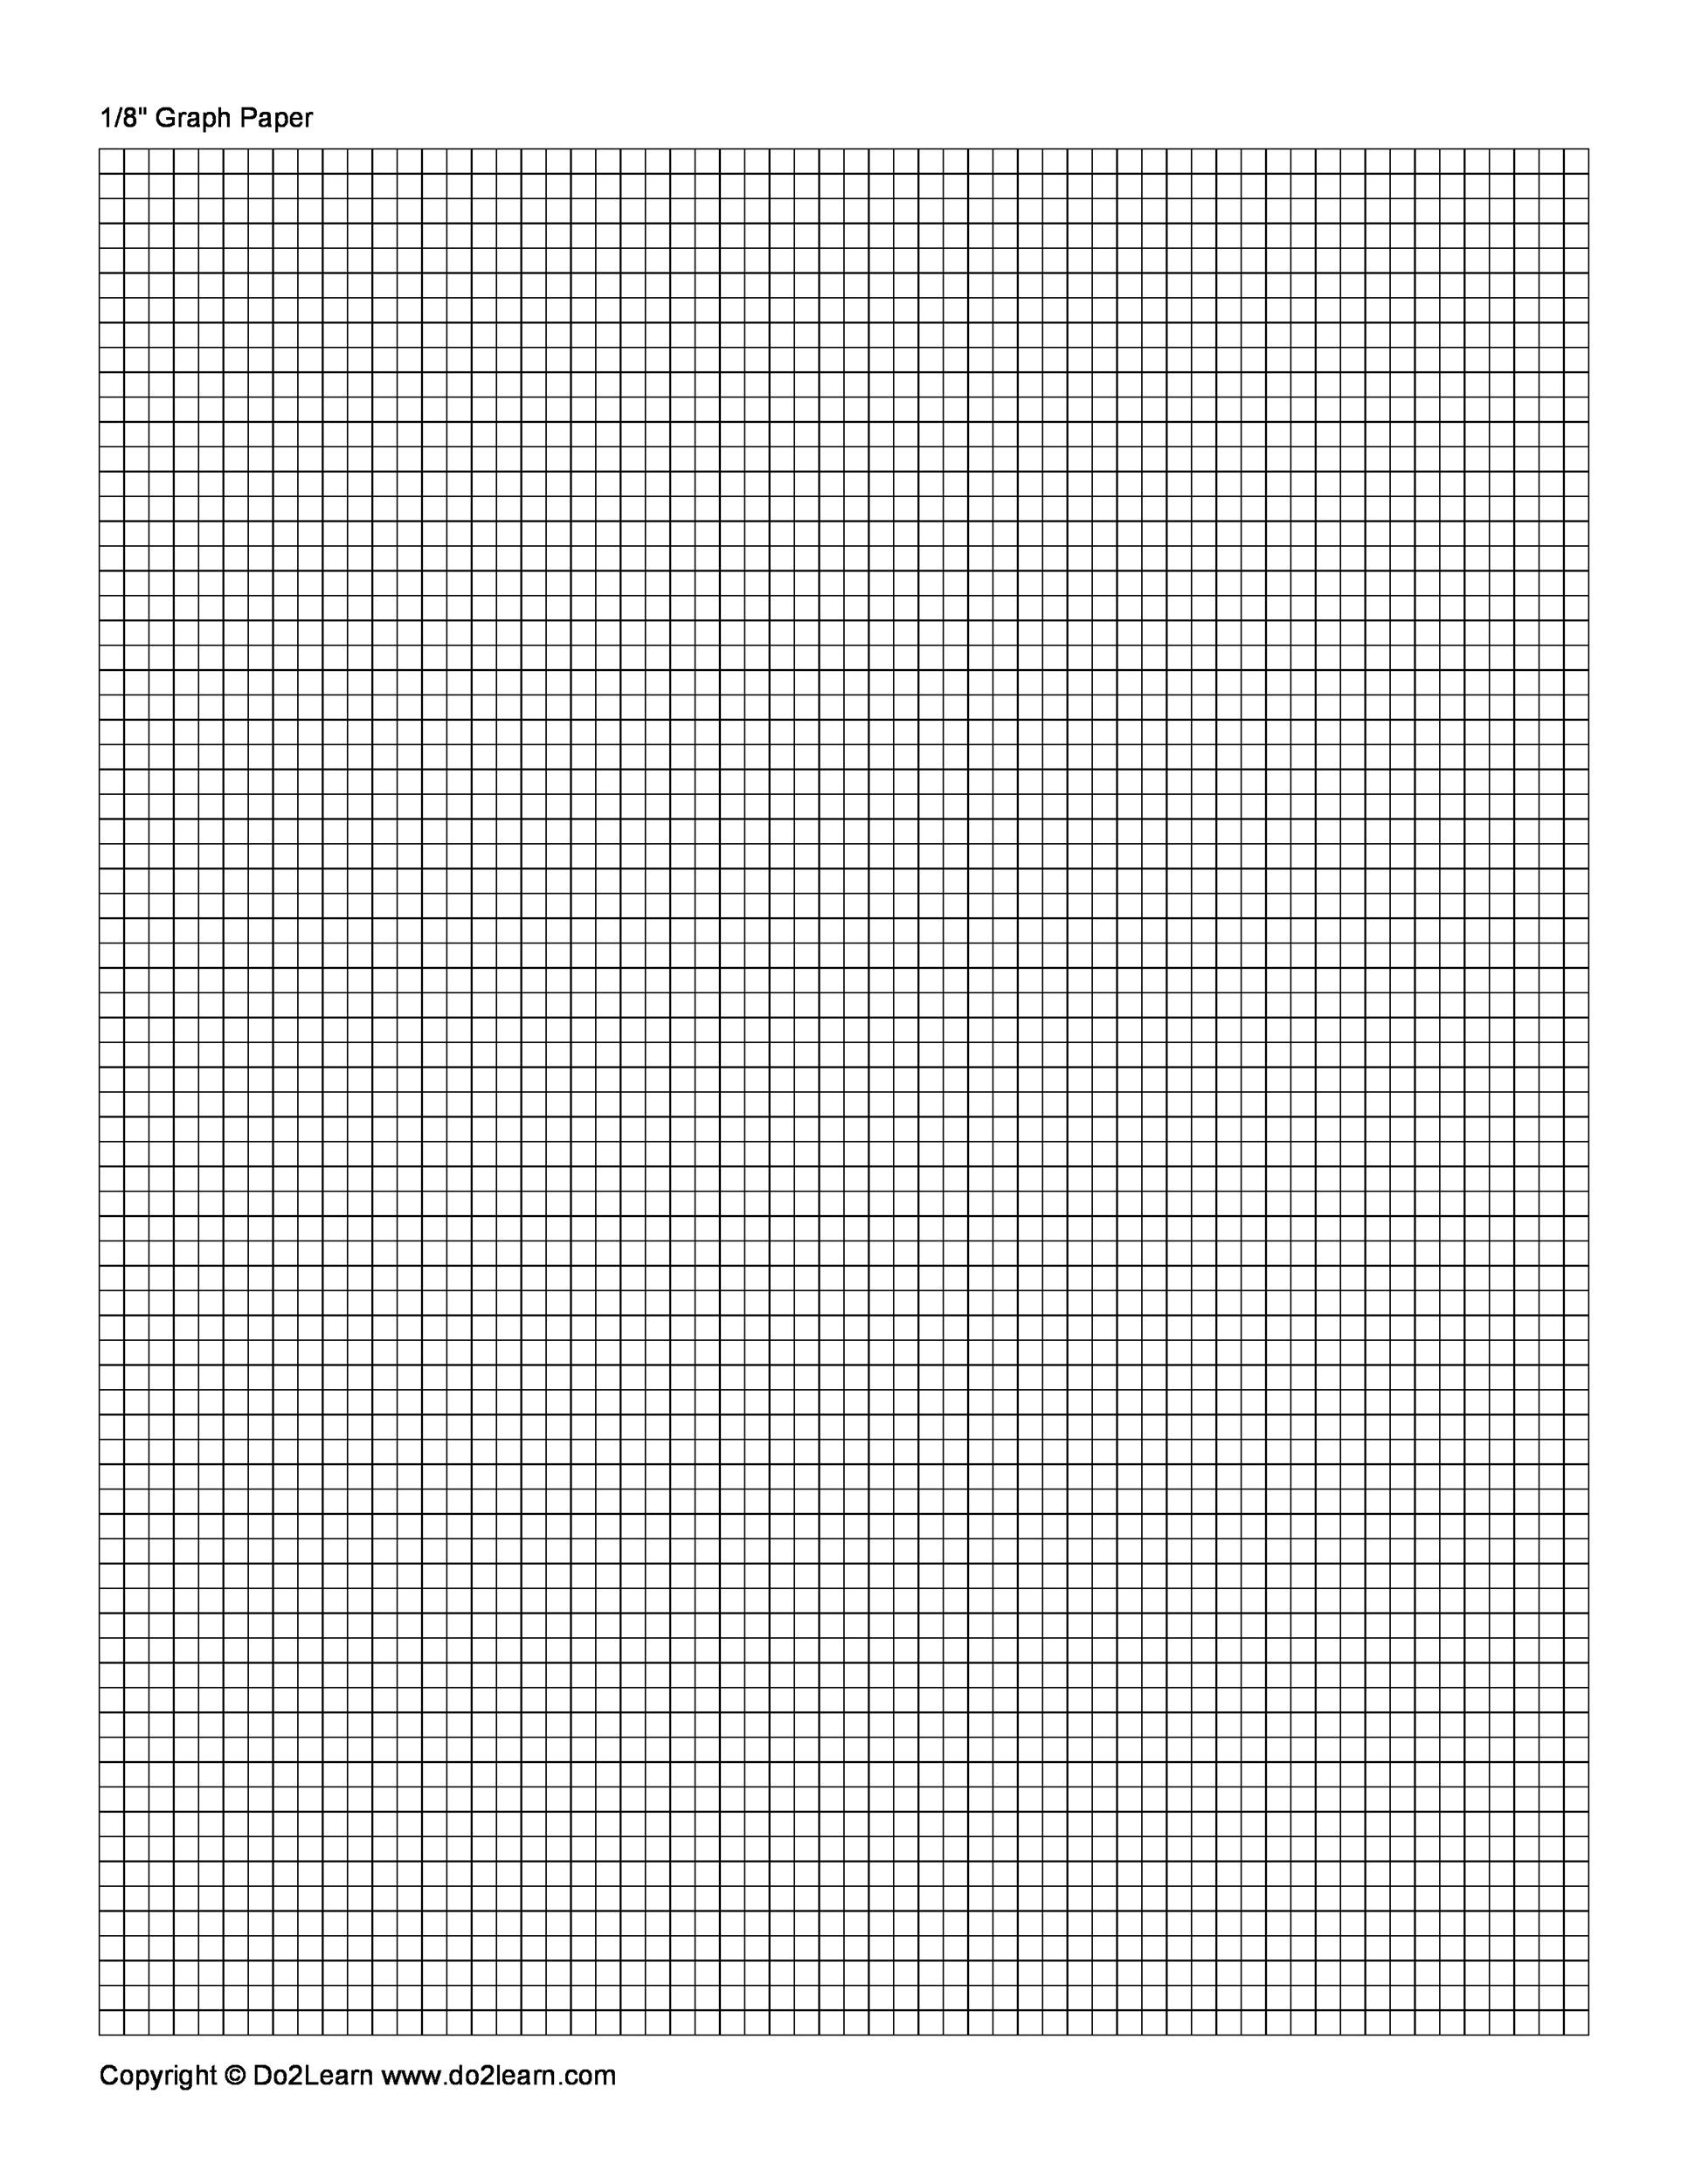 Printable Graph Paper Template 01  Lined Paper Printables